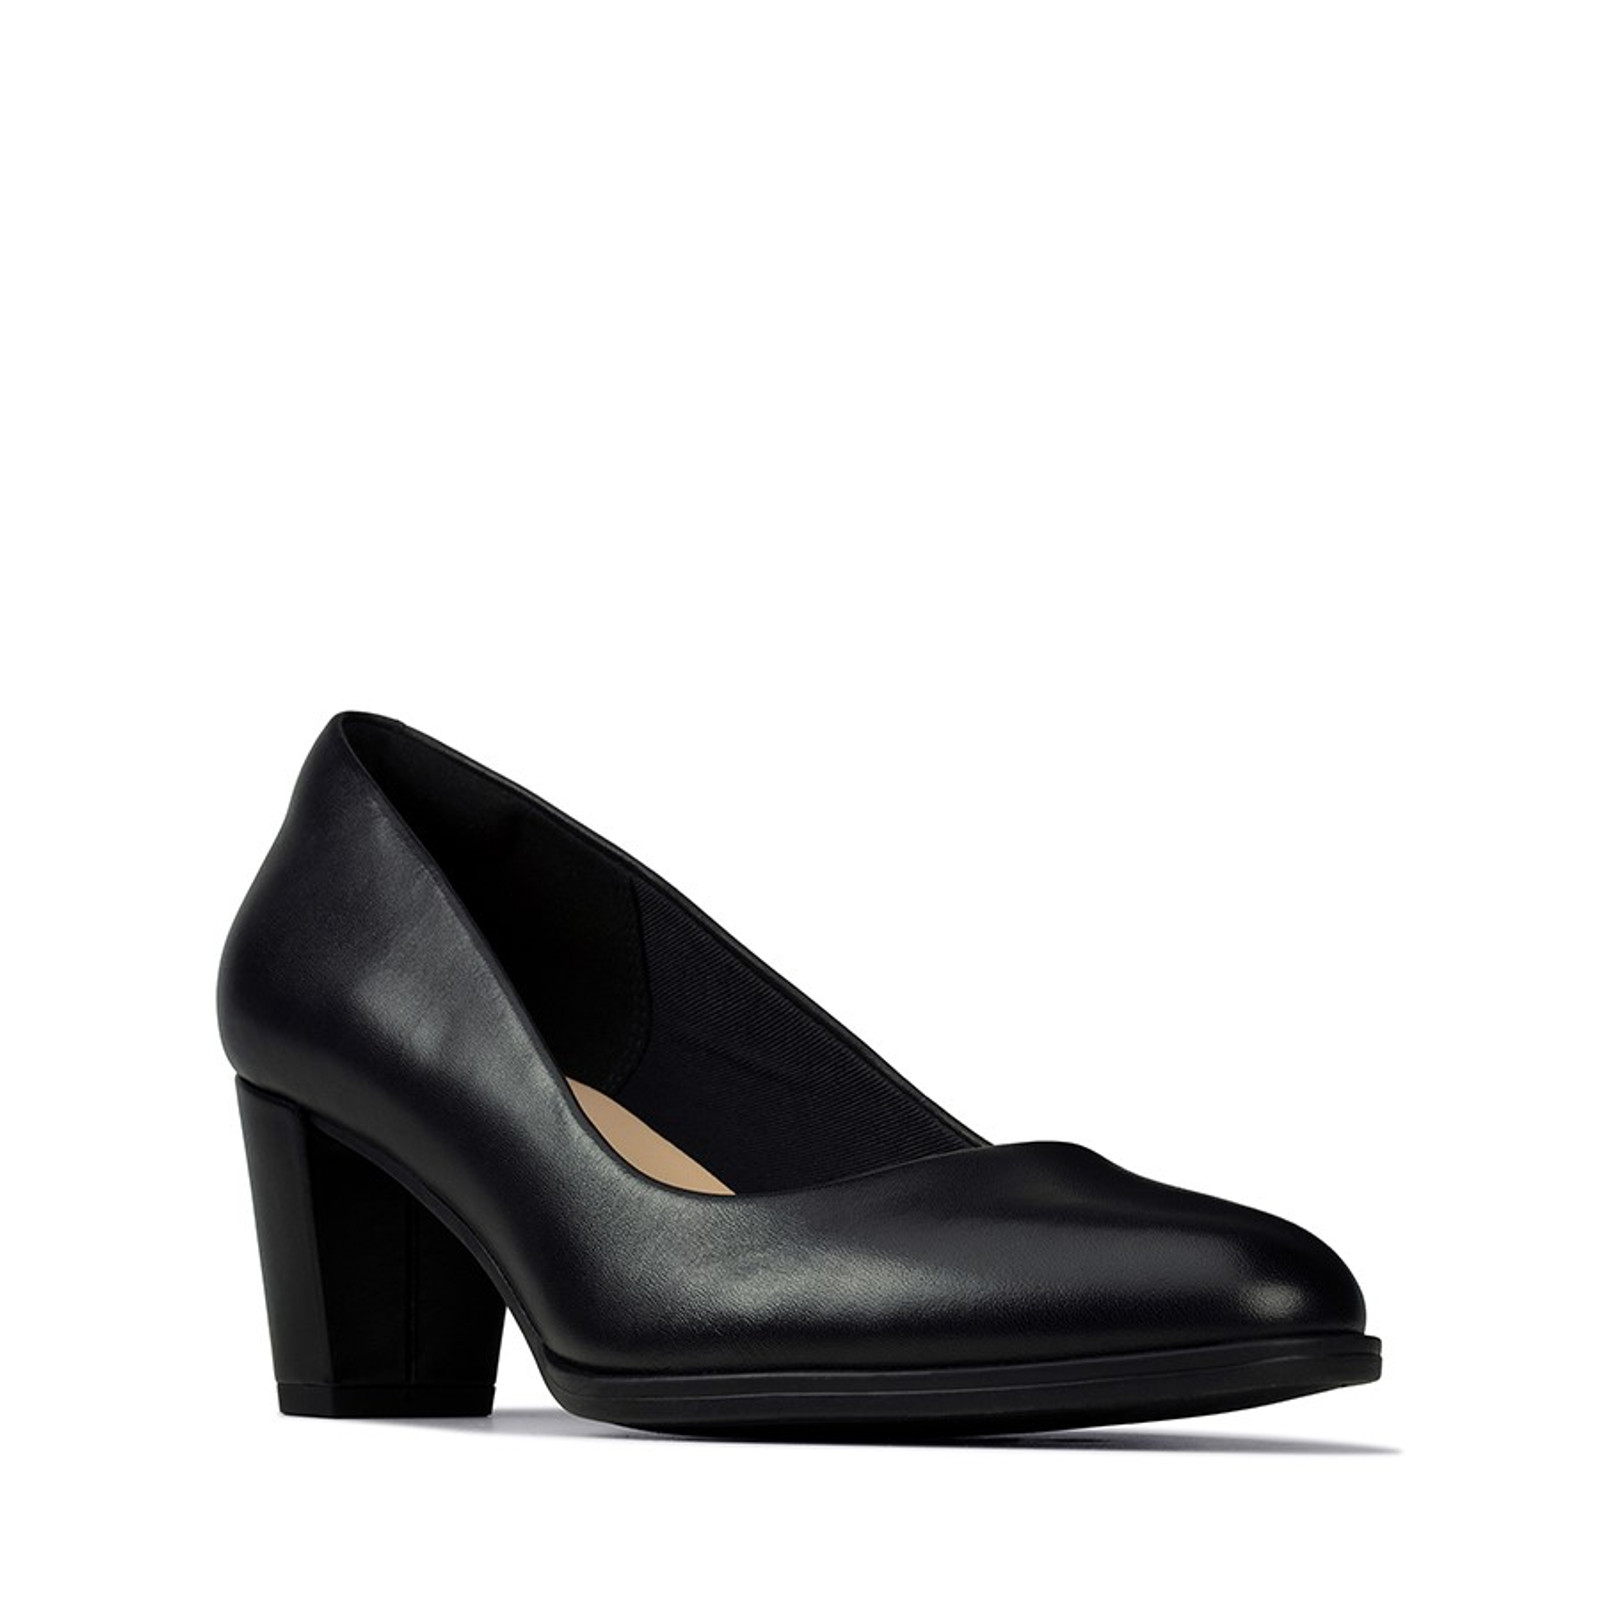 Clarks Womens KAYLIN60 COURT Black Leather